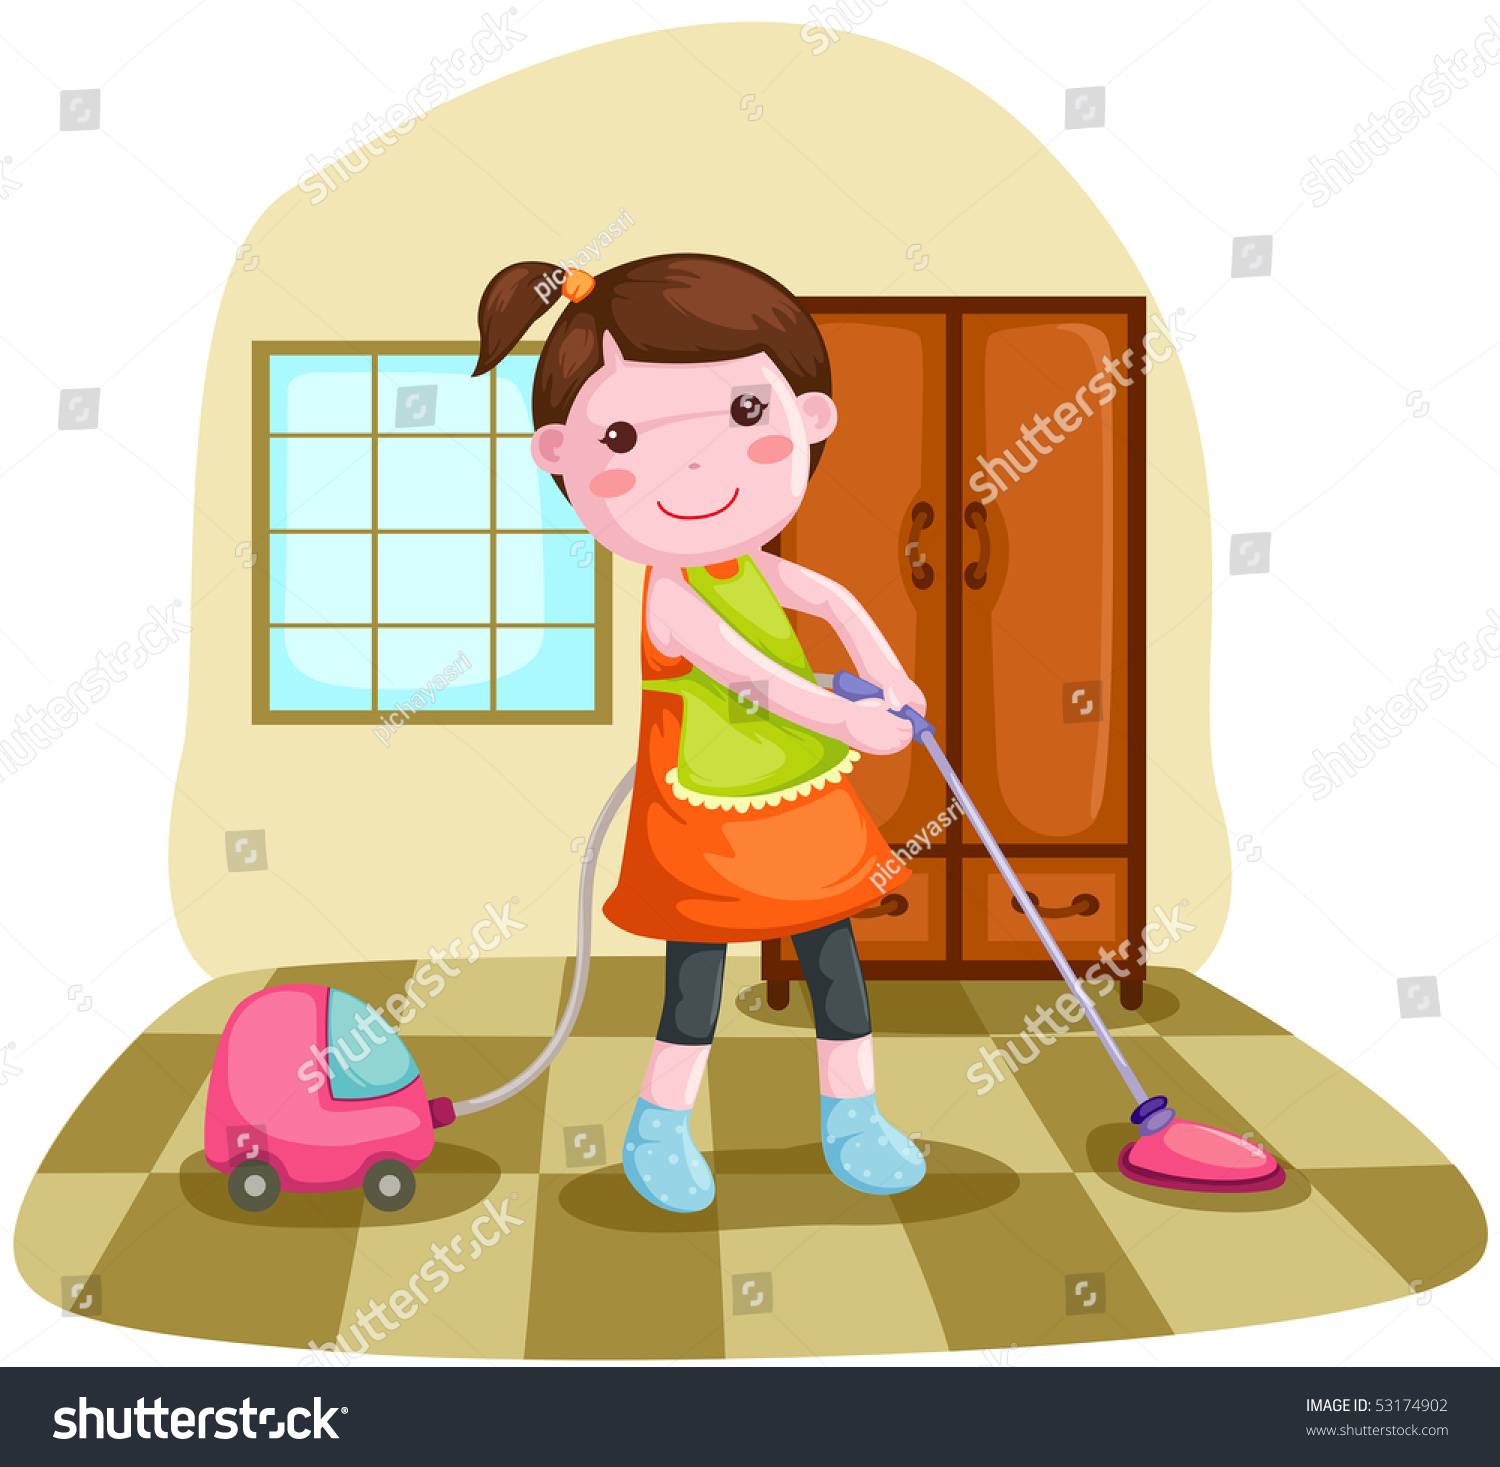 Illustration Of Woman Using Vacuum Cleaner To Clean House.